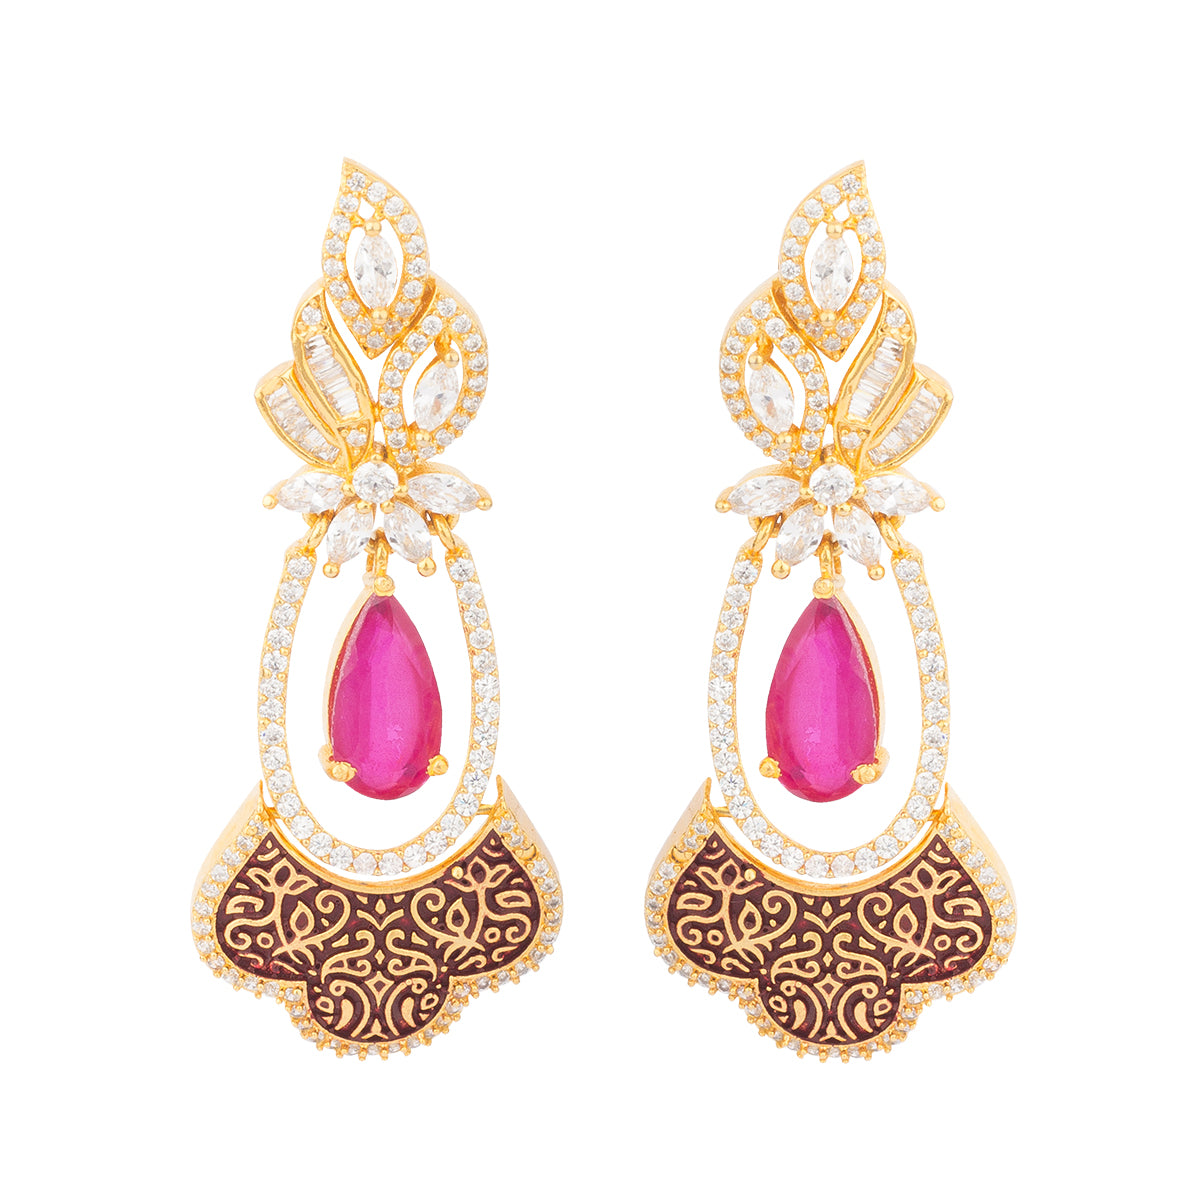 This earring is curated with shiny crystals, red tear drop shapped stone in the middle and beautiful design at the bottom.